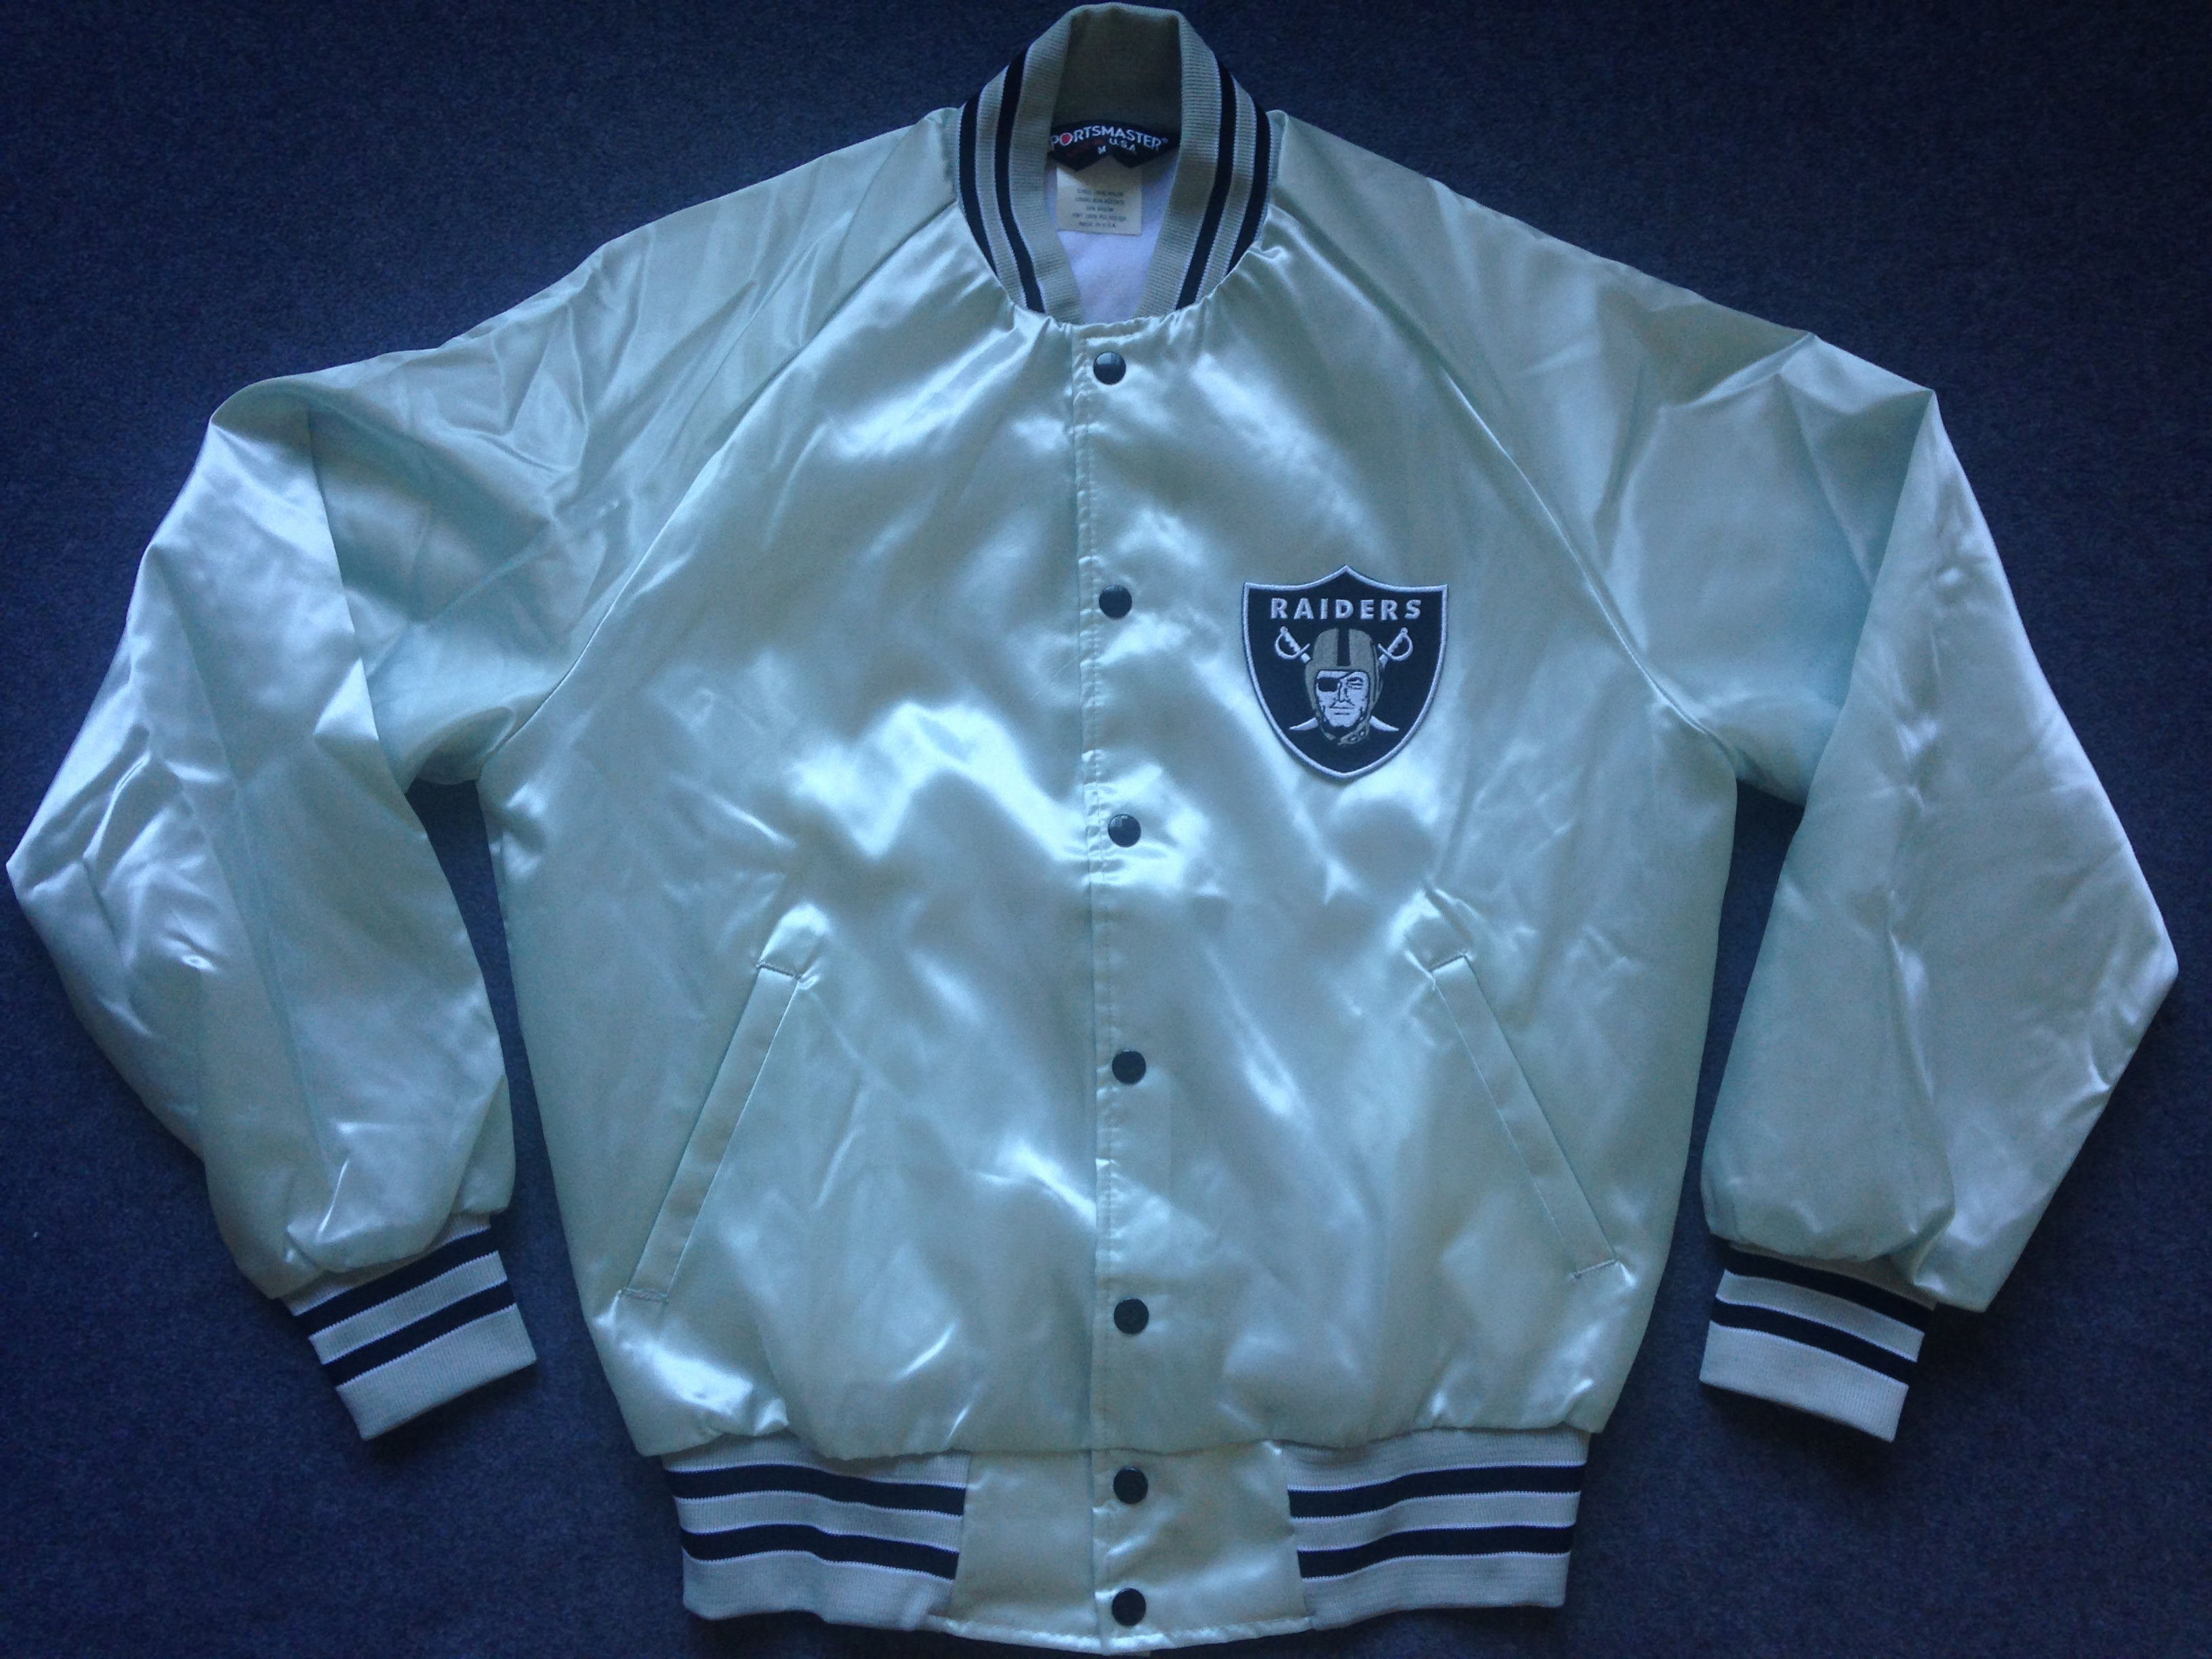 finest selection f5fbf 54172 Oakland Raiders SILVER satin jacket - M